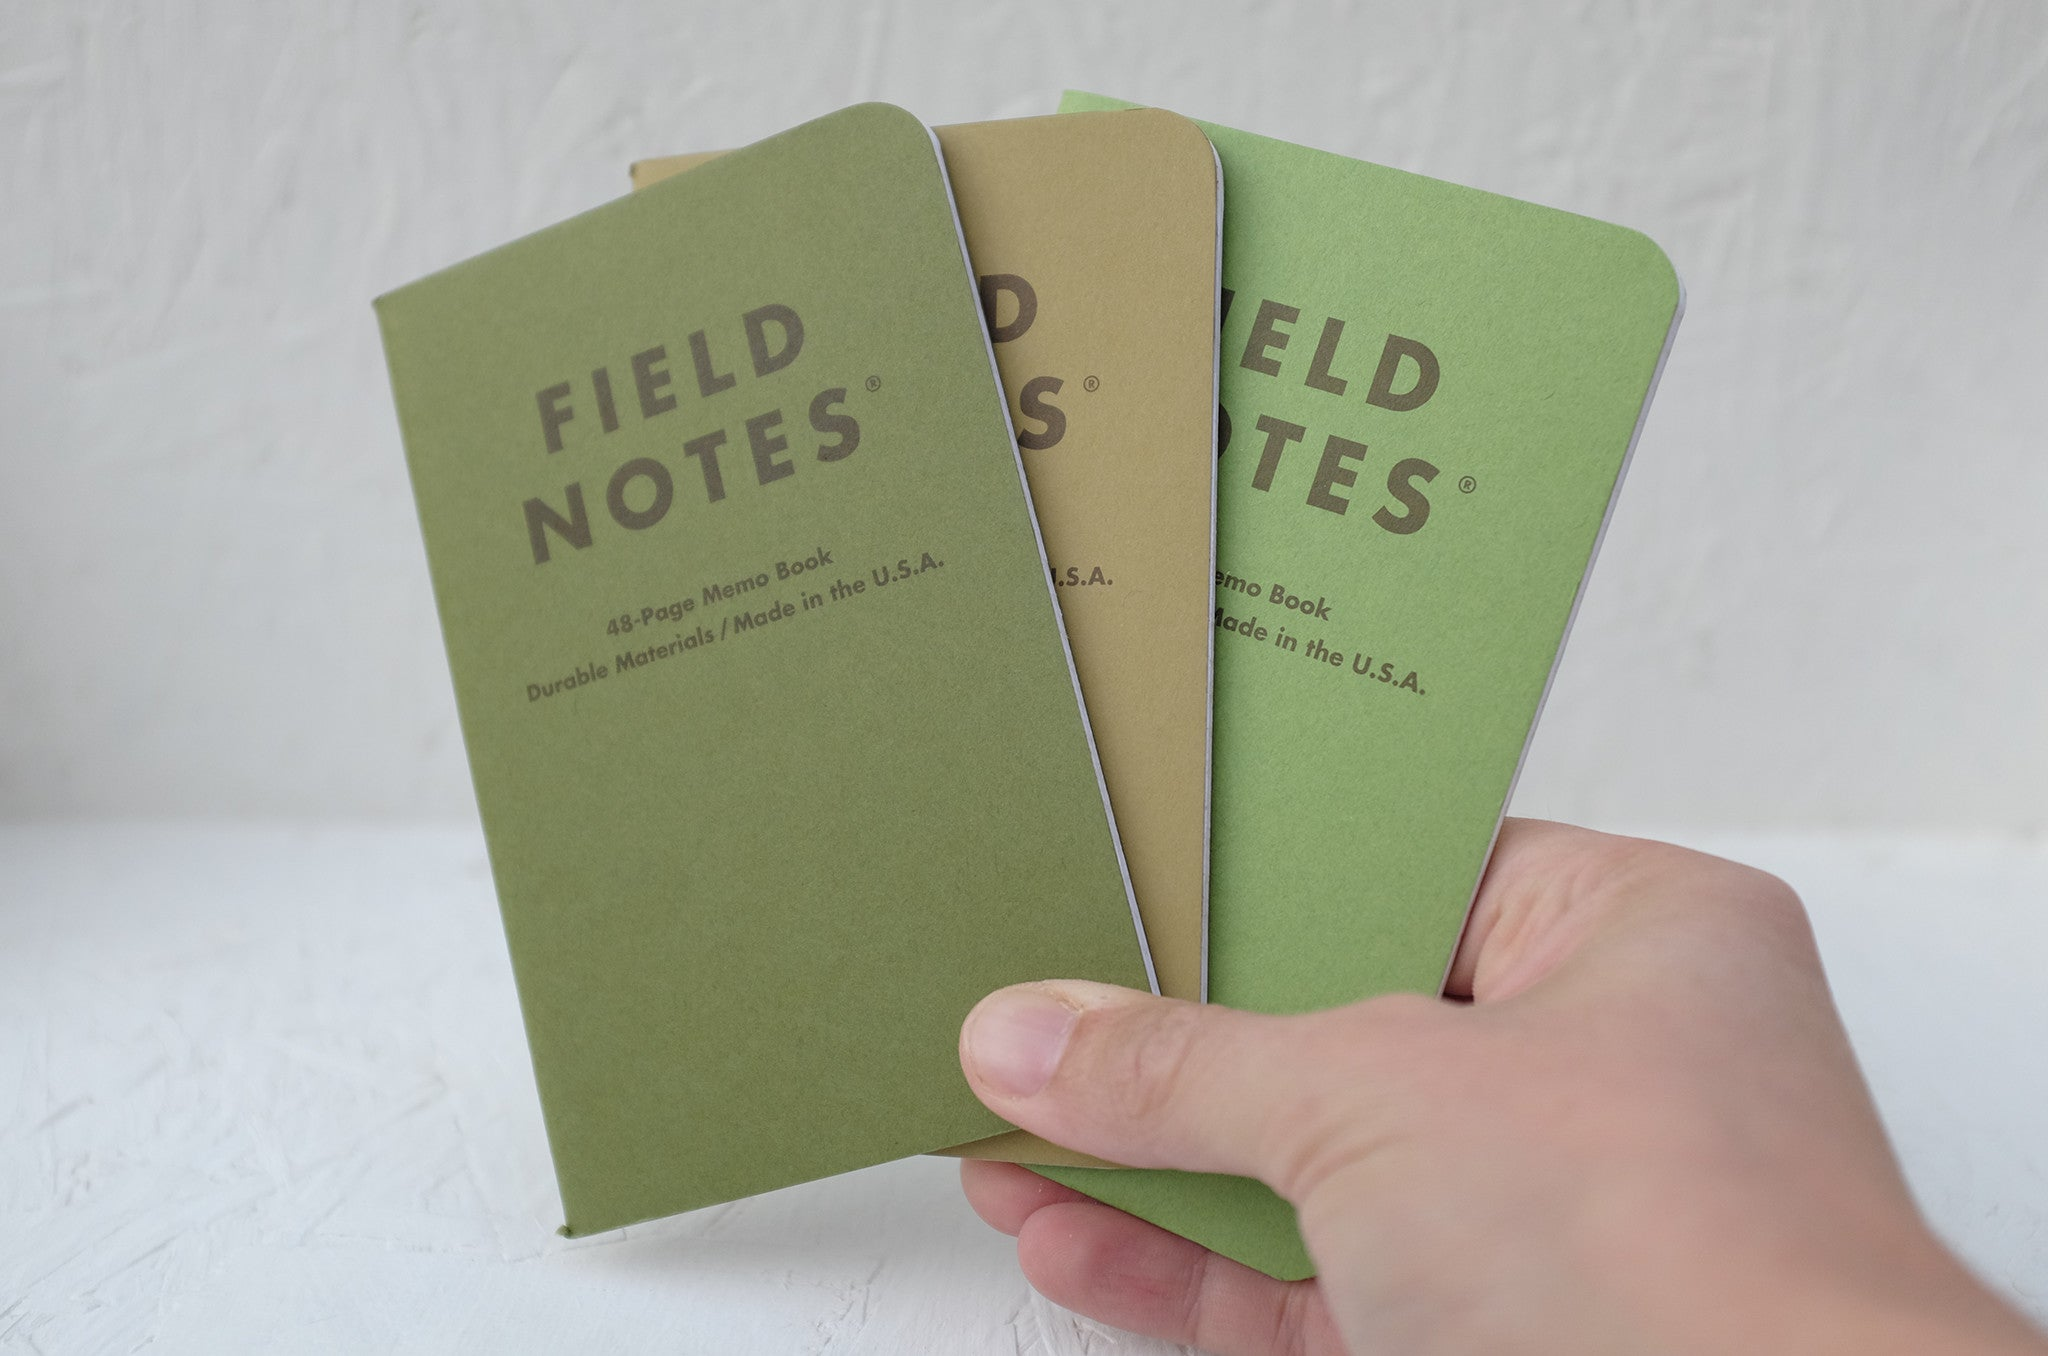 Field Notes notebooks - 'Shenandoah' 3-pack